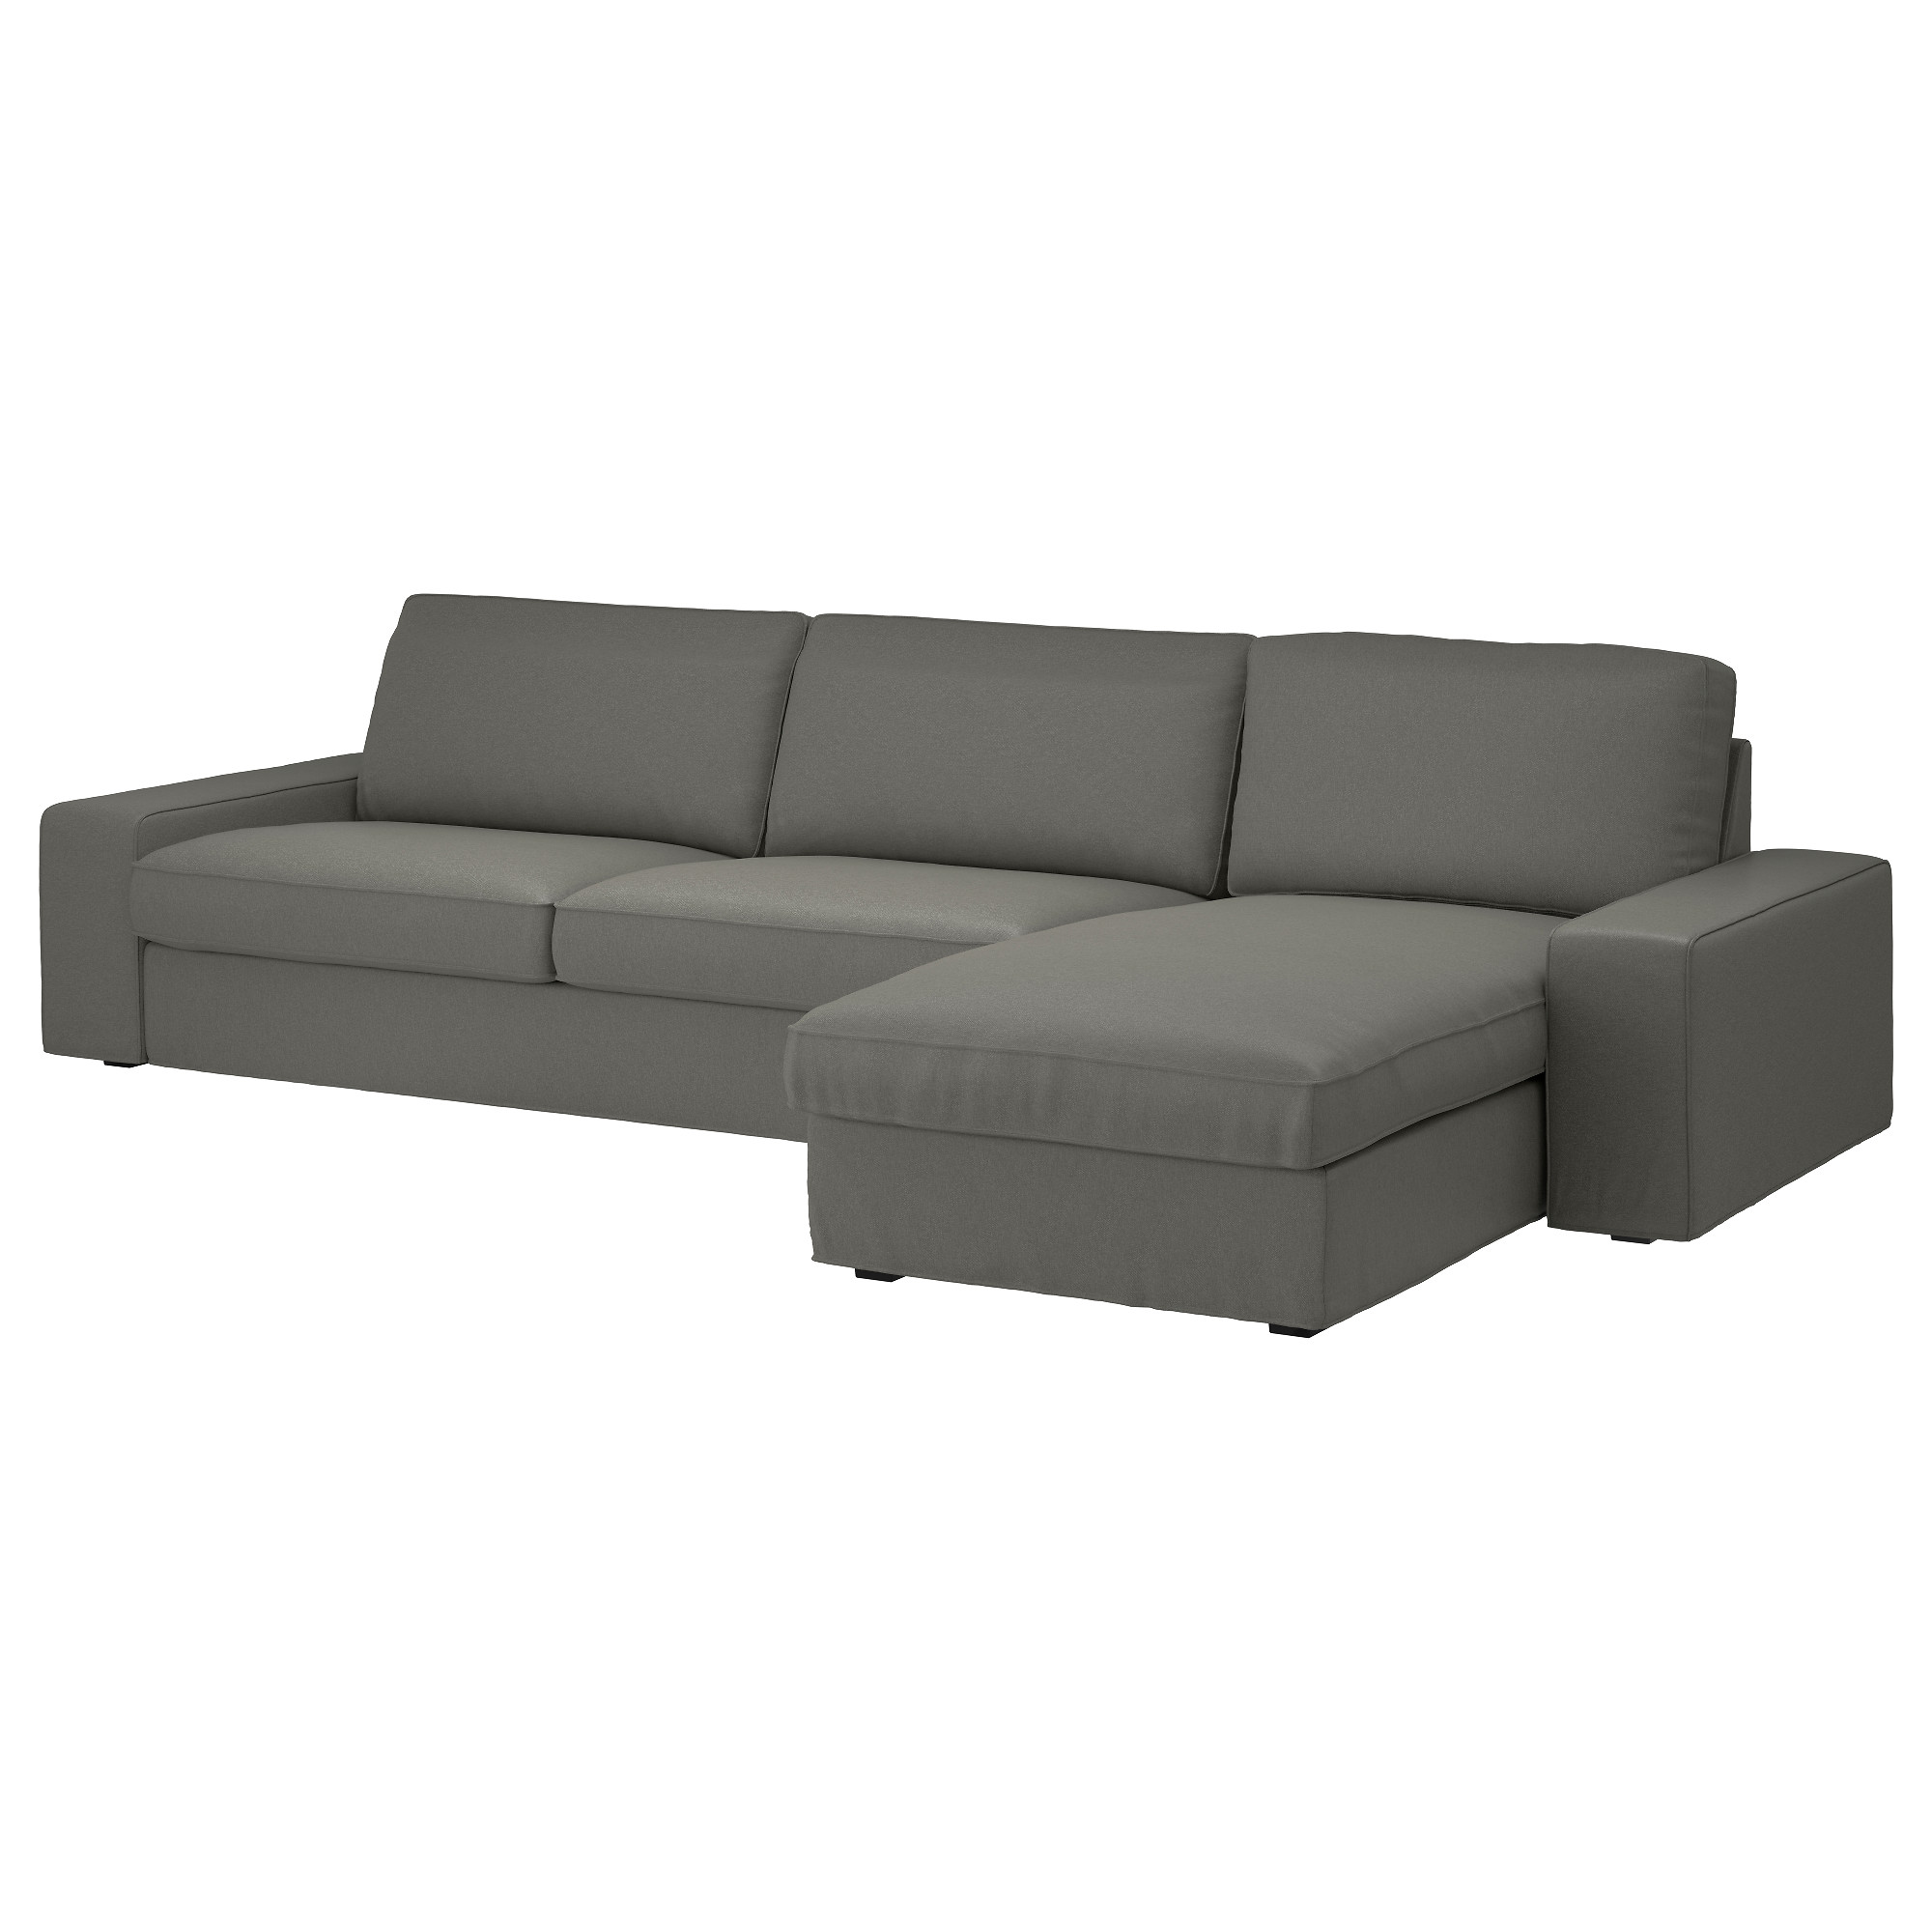 couch size sofa living under chaise sets dazzling for full gray small decorating dollarsgrey sofas recliner uk ideas photo of sectional with design grey set